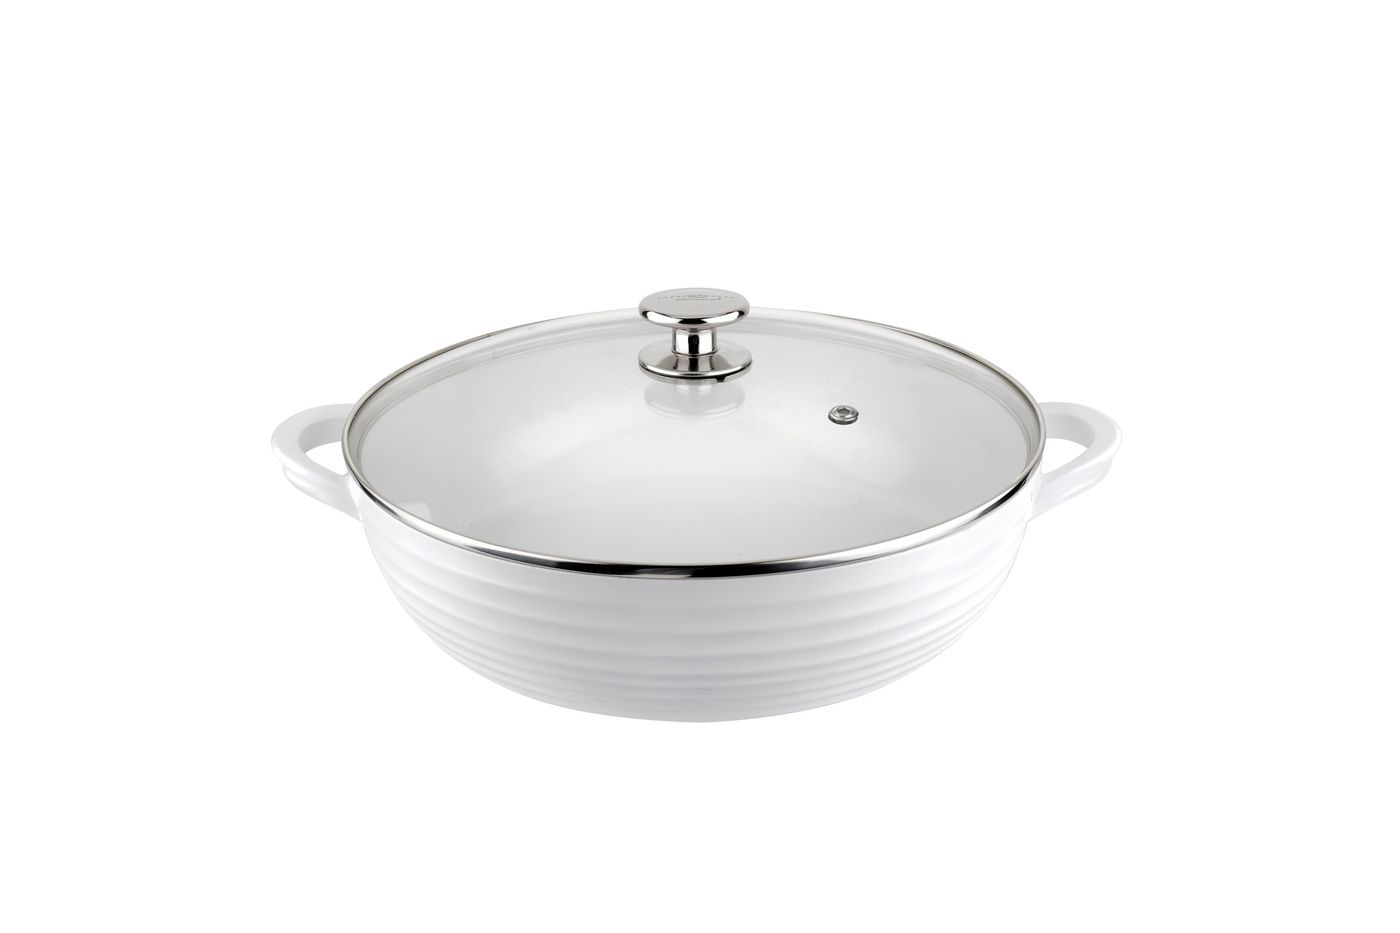 Sophie Conran for Portmeirion Cookware Casserole Dish + Lid Shallow - White. Metal body with ceramic coating. thumb 1